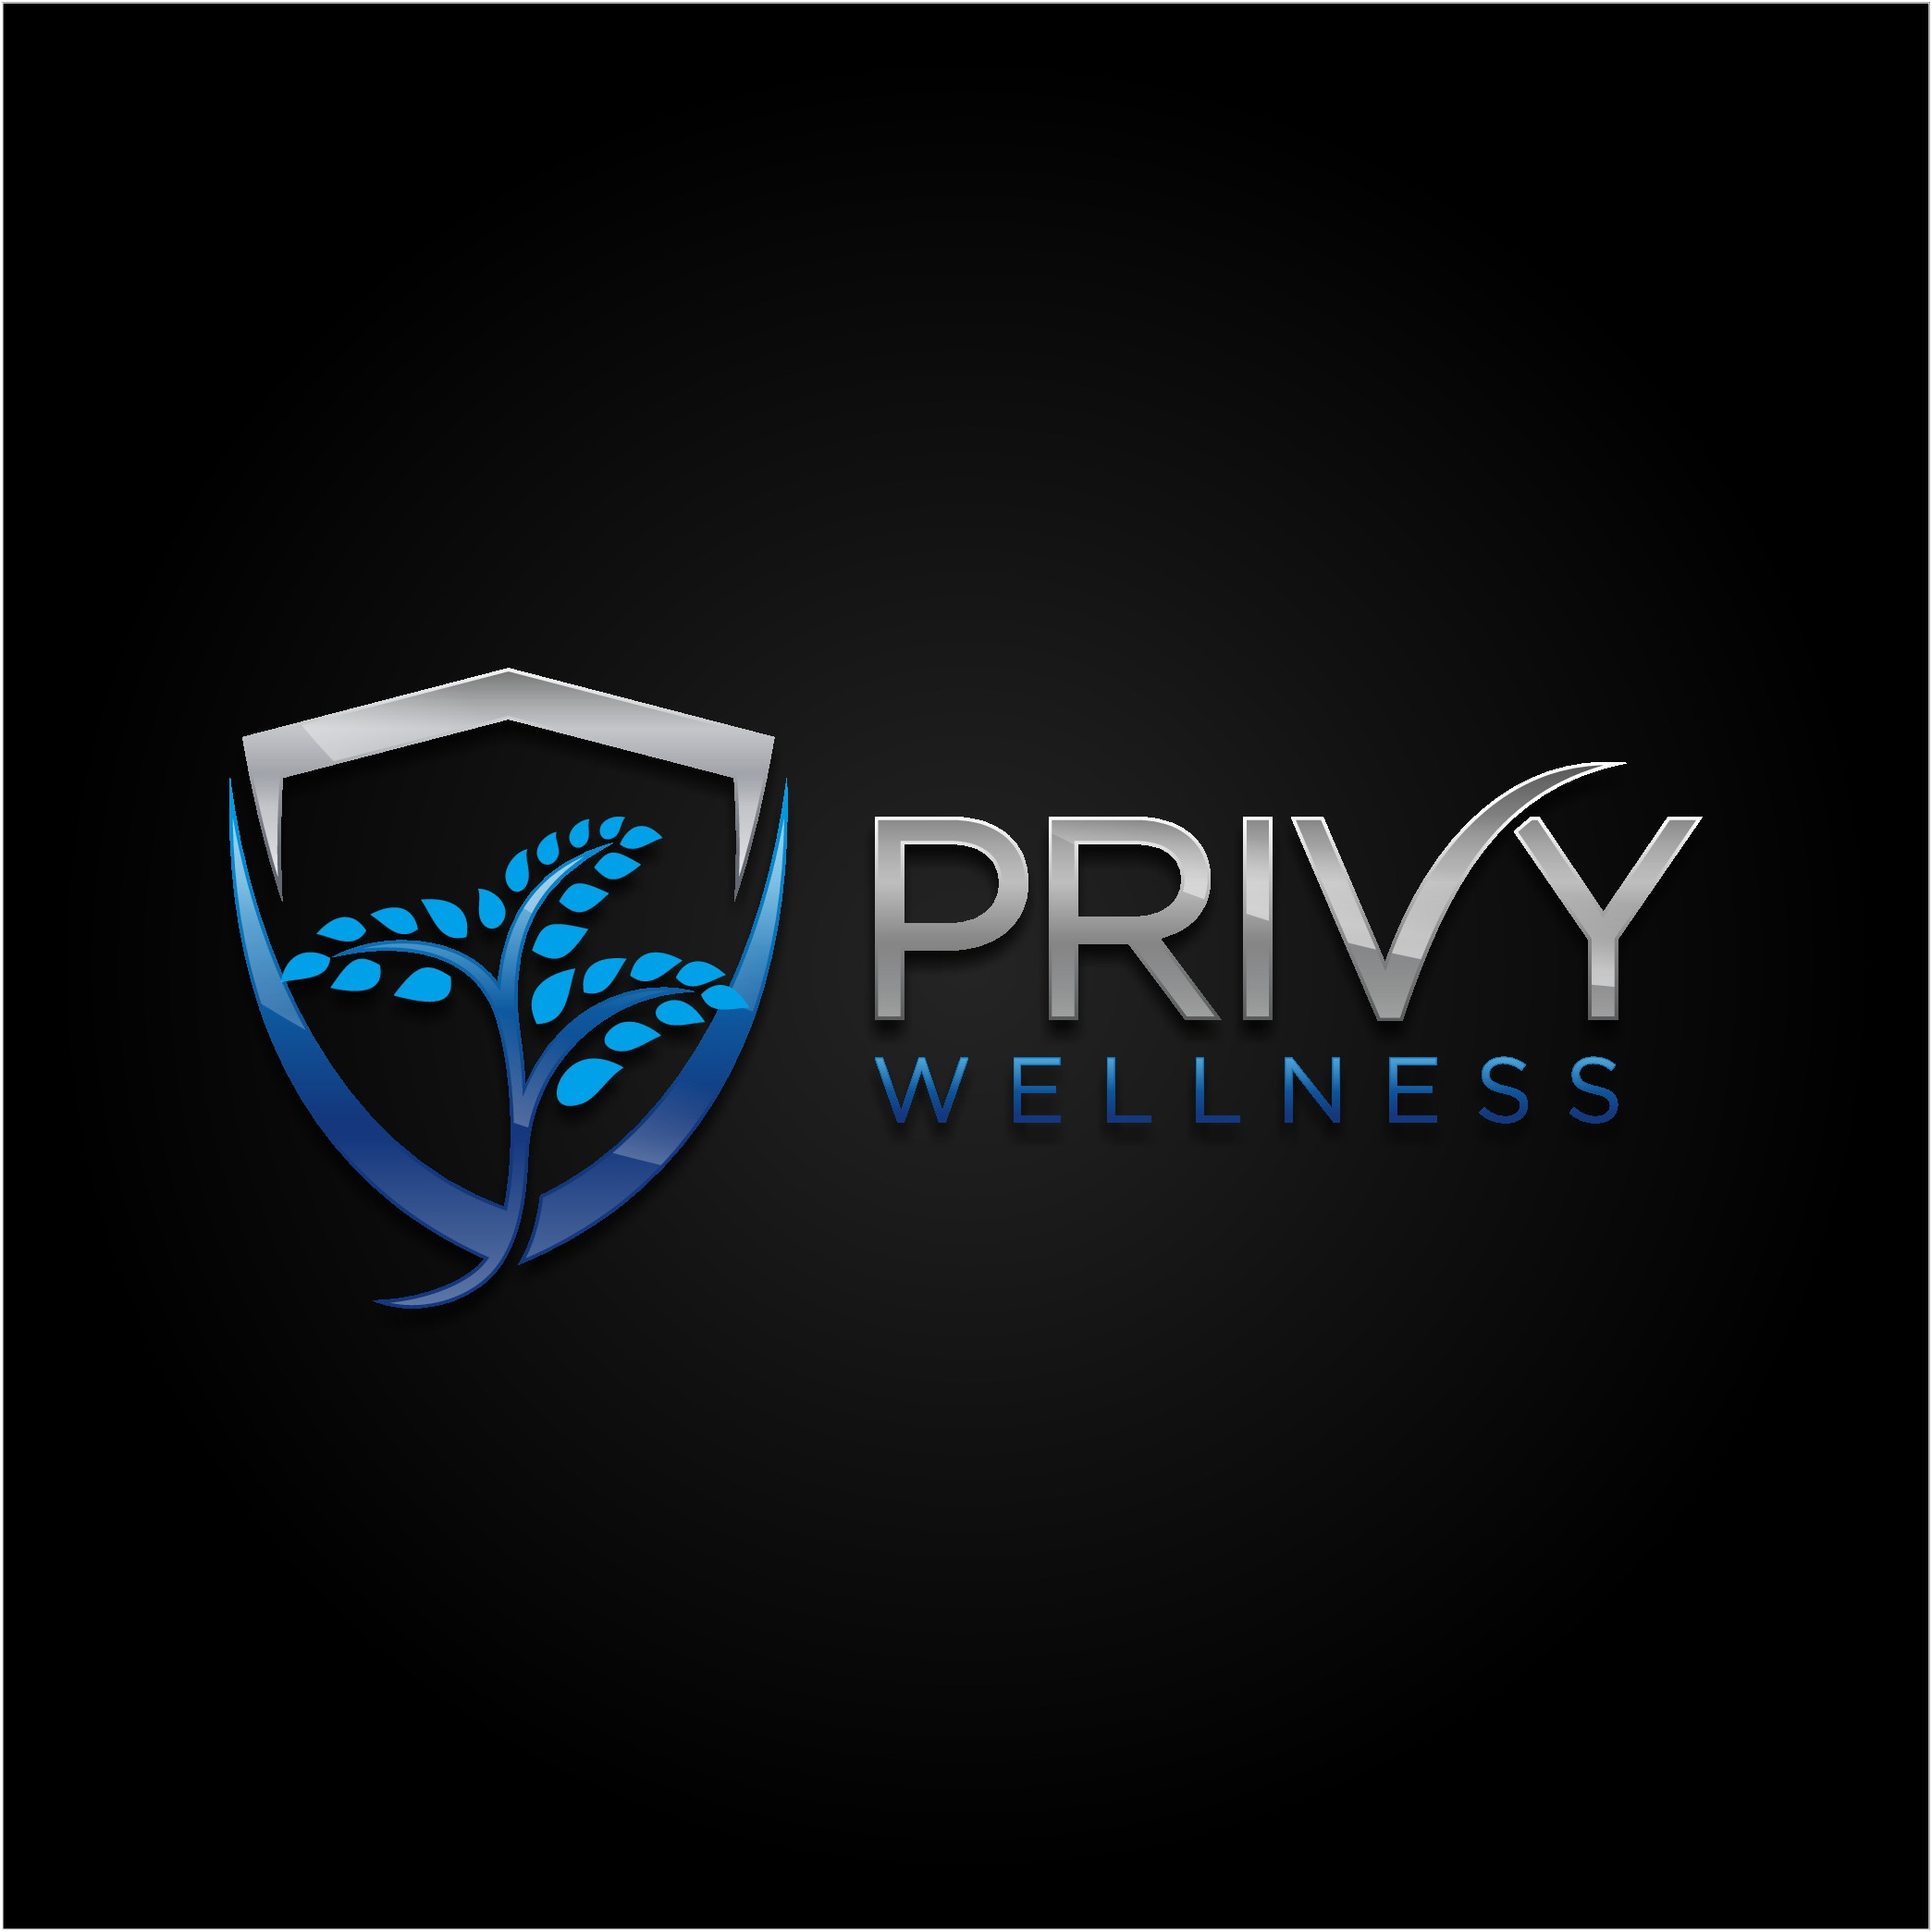 Creative and trendy design logo for healthy lifestyle brand